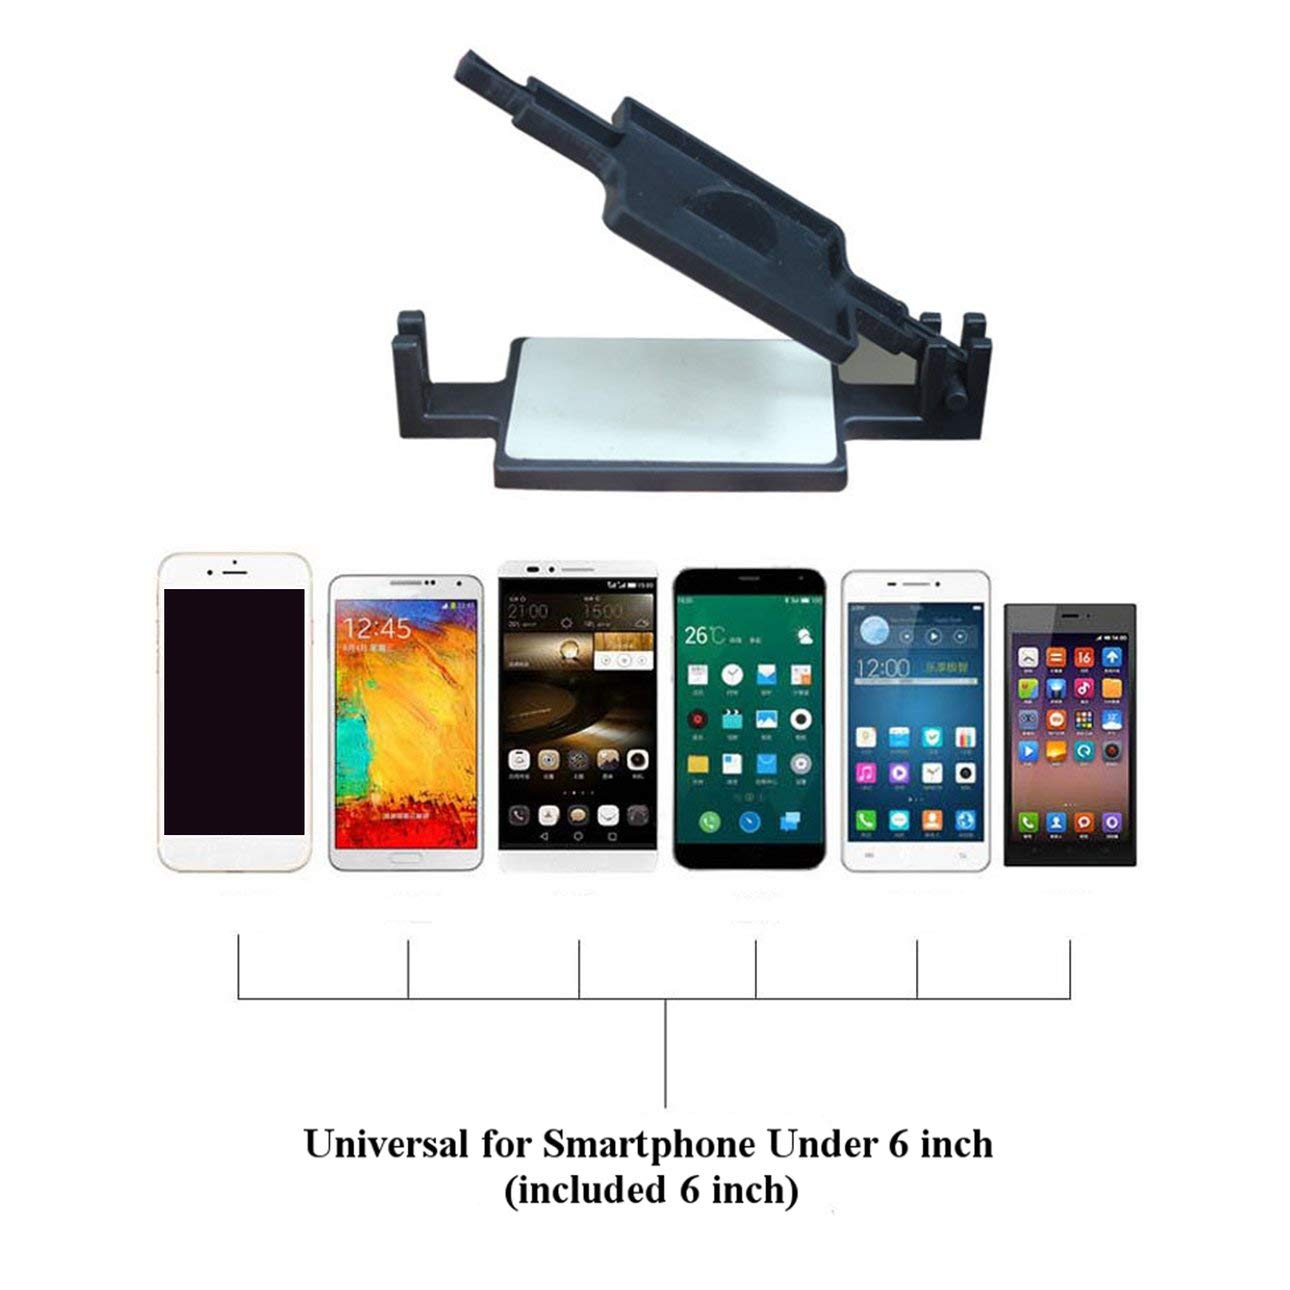 Liobaba Tempered Screen Protector Film Pasting Tool Installation Helping Device for Smartphone Under 6 Inches